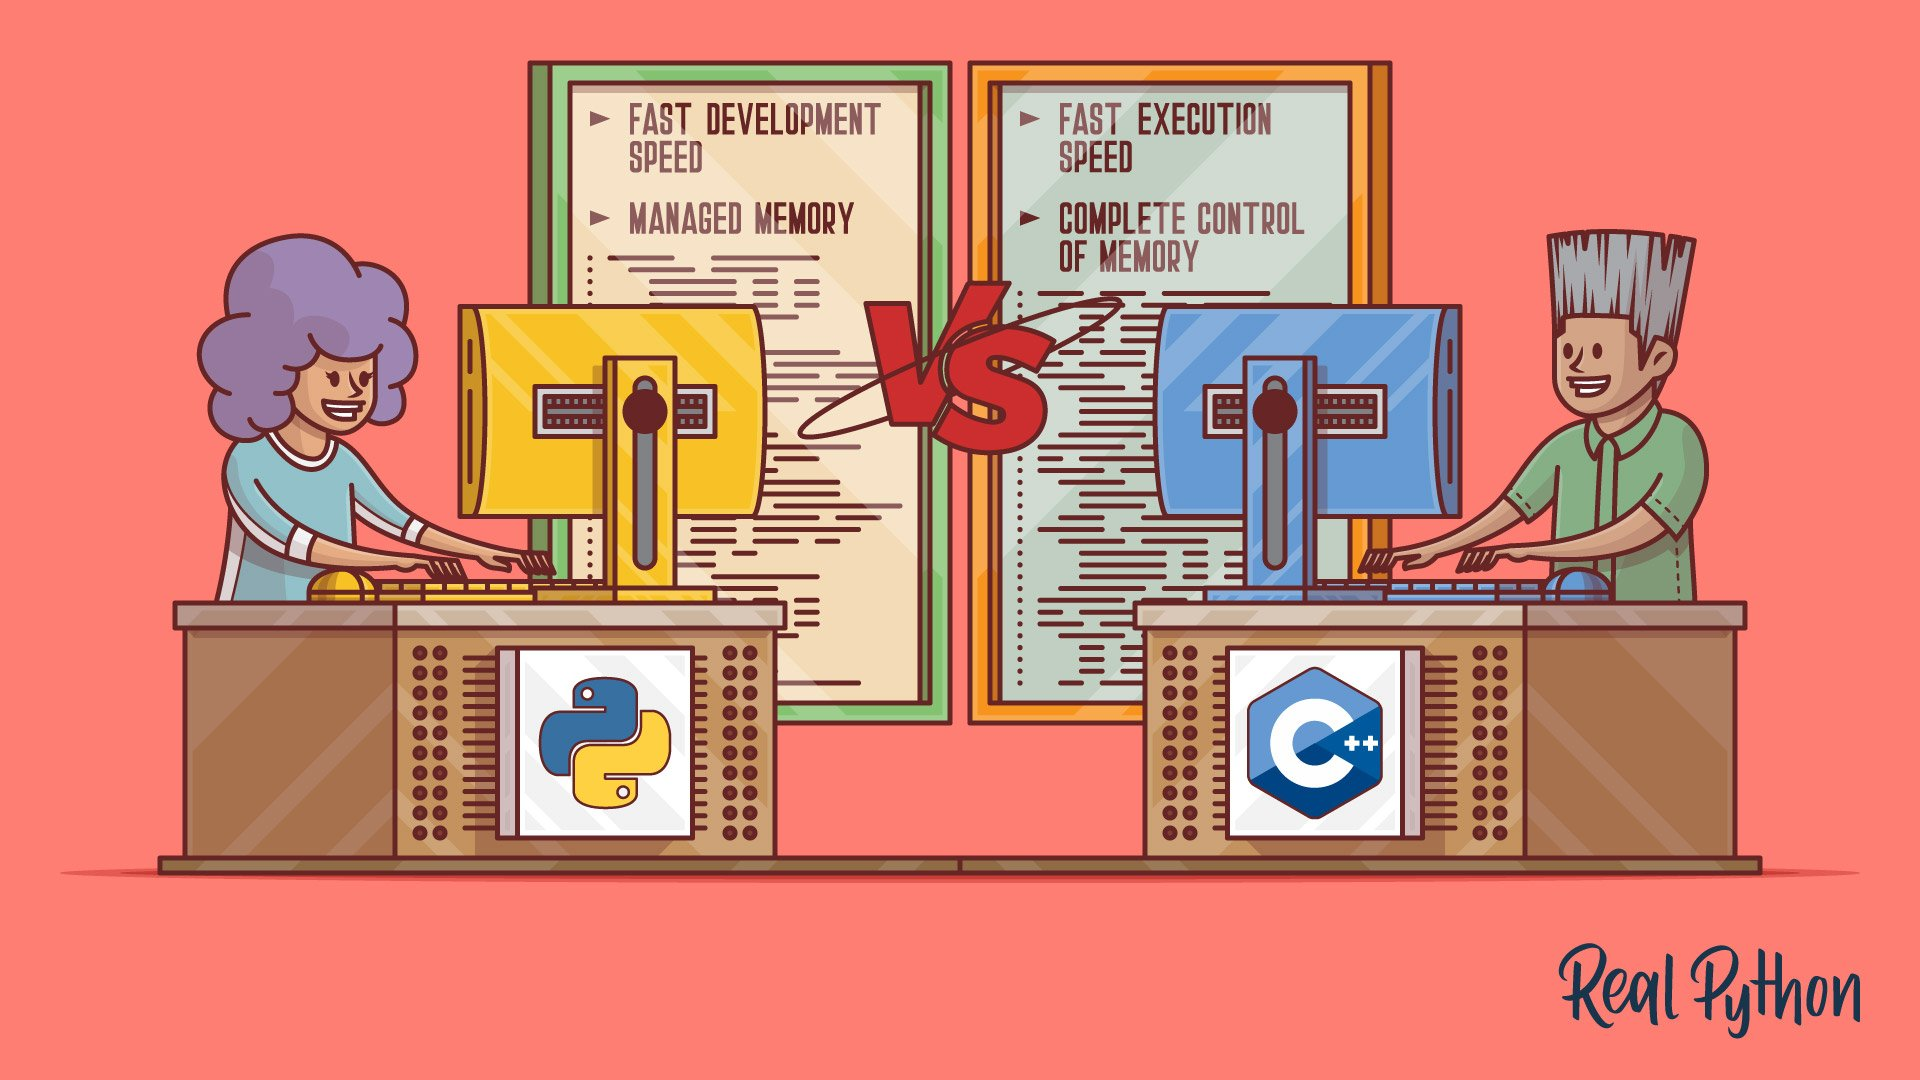 Python vs C++: Selecting the Right Tool for the Job